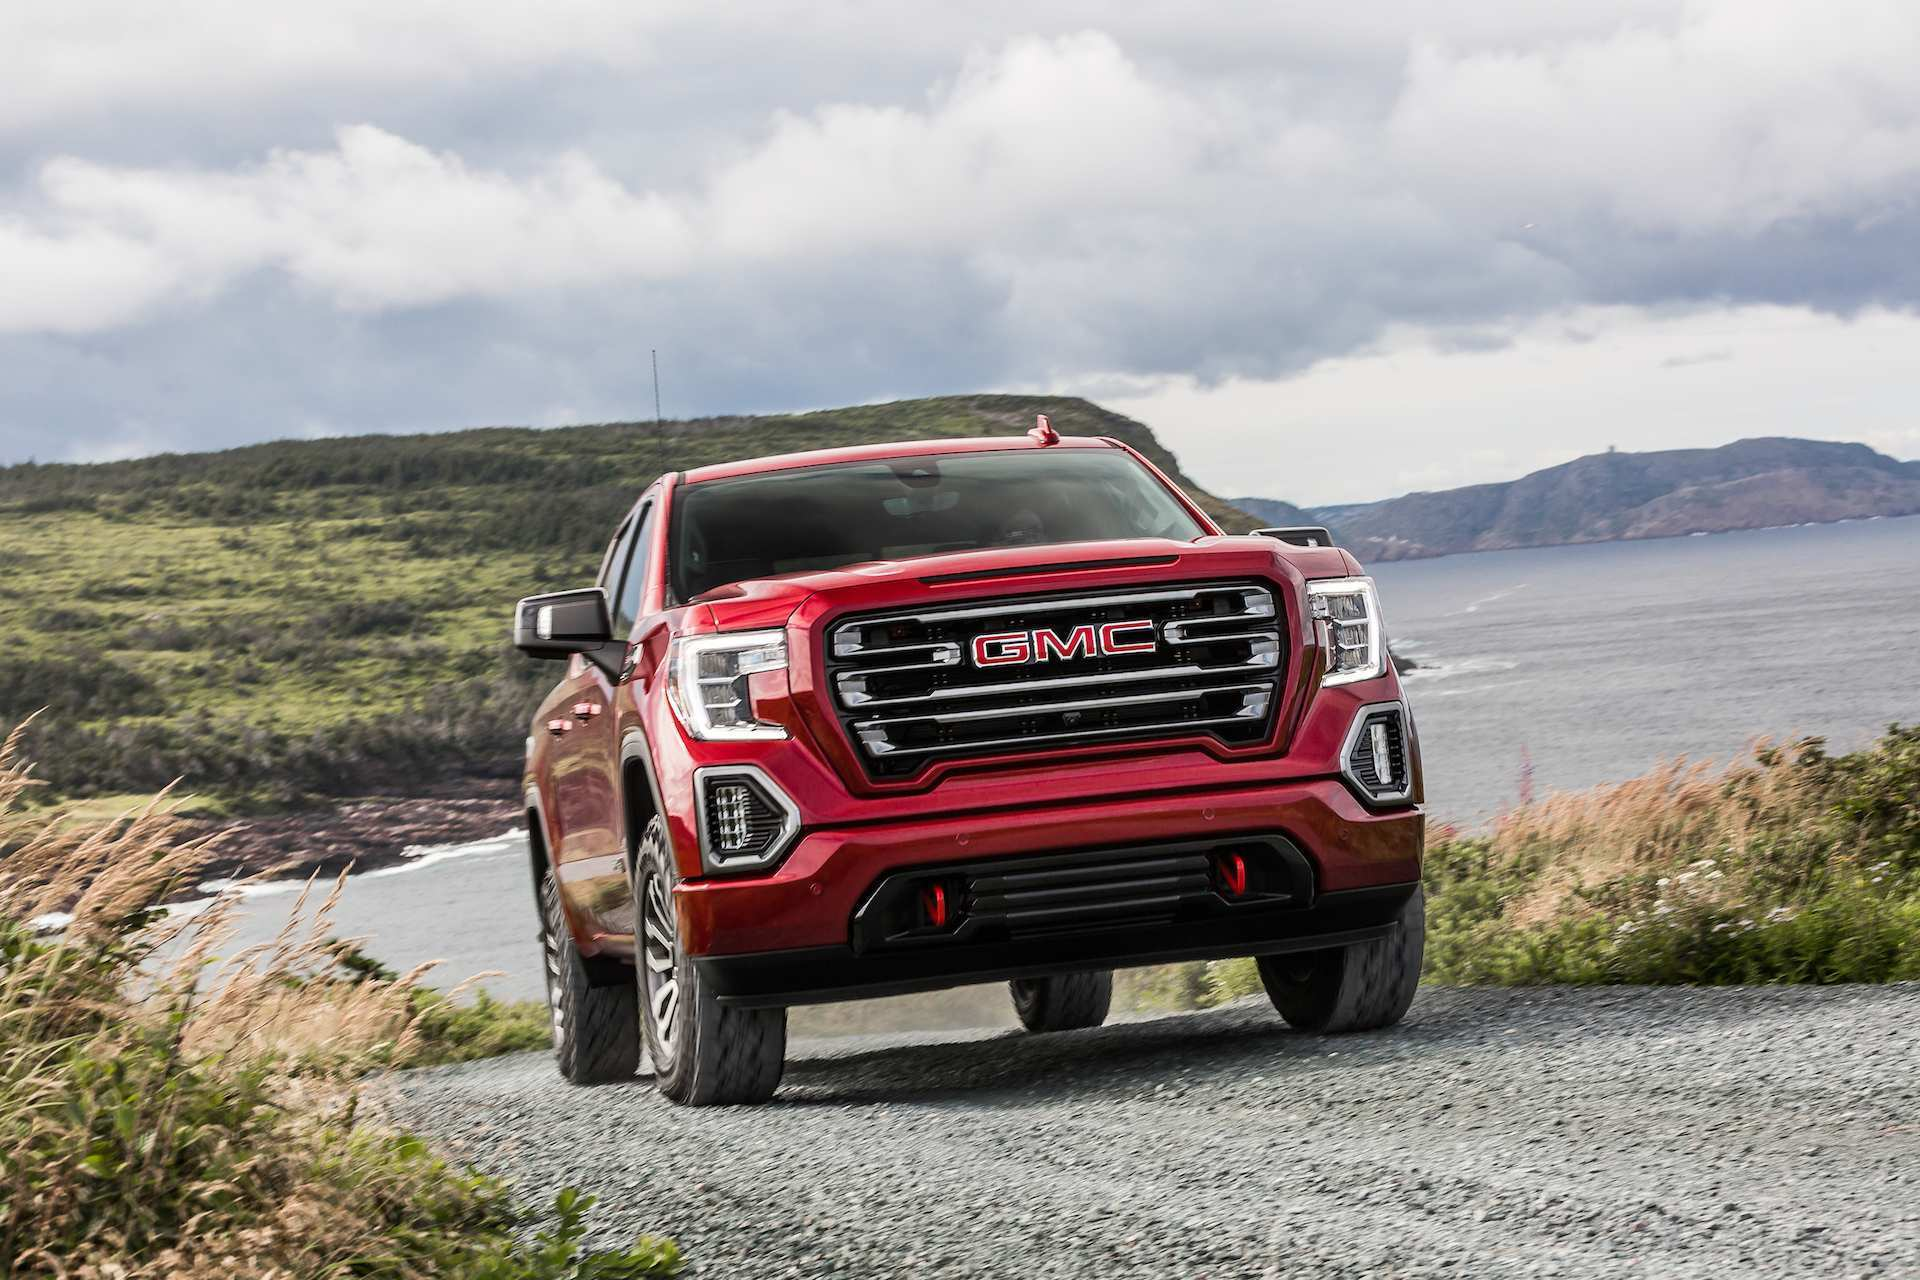 15 New Tailgate On 2019 Gmc Sierra First Drive Release Date with Tailgate On 2019 Gmc Sierra First Drive